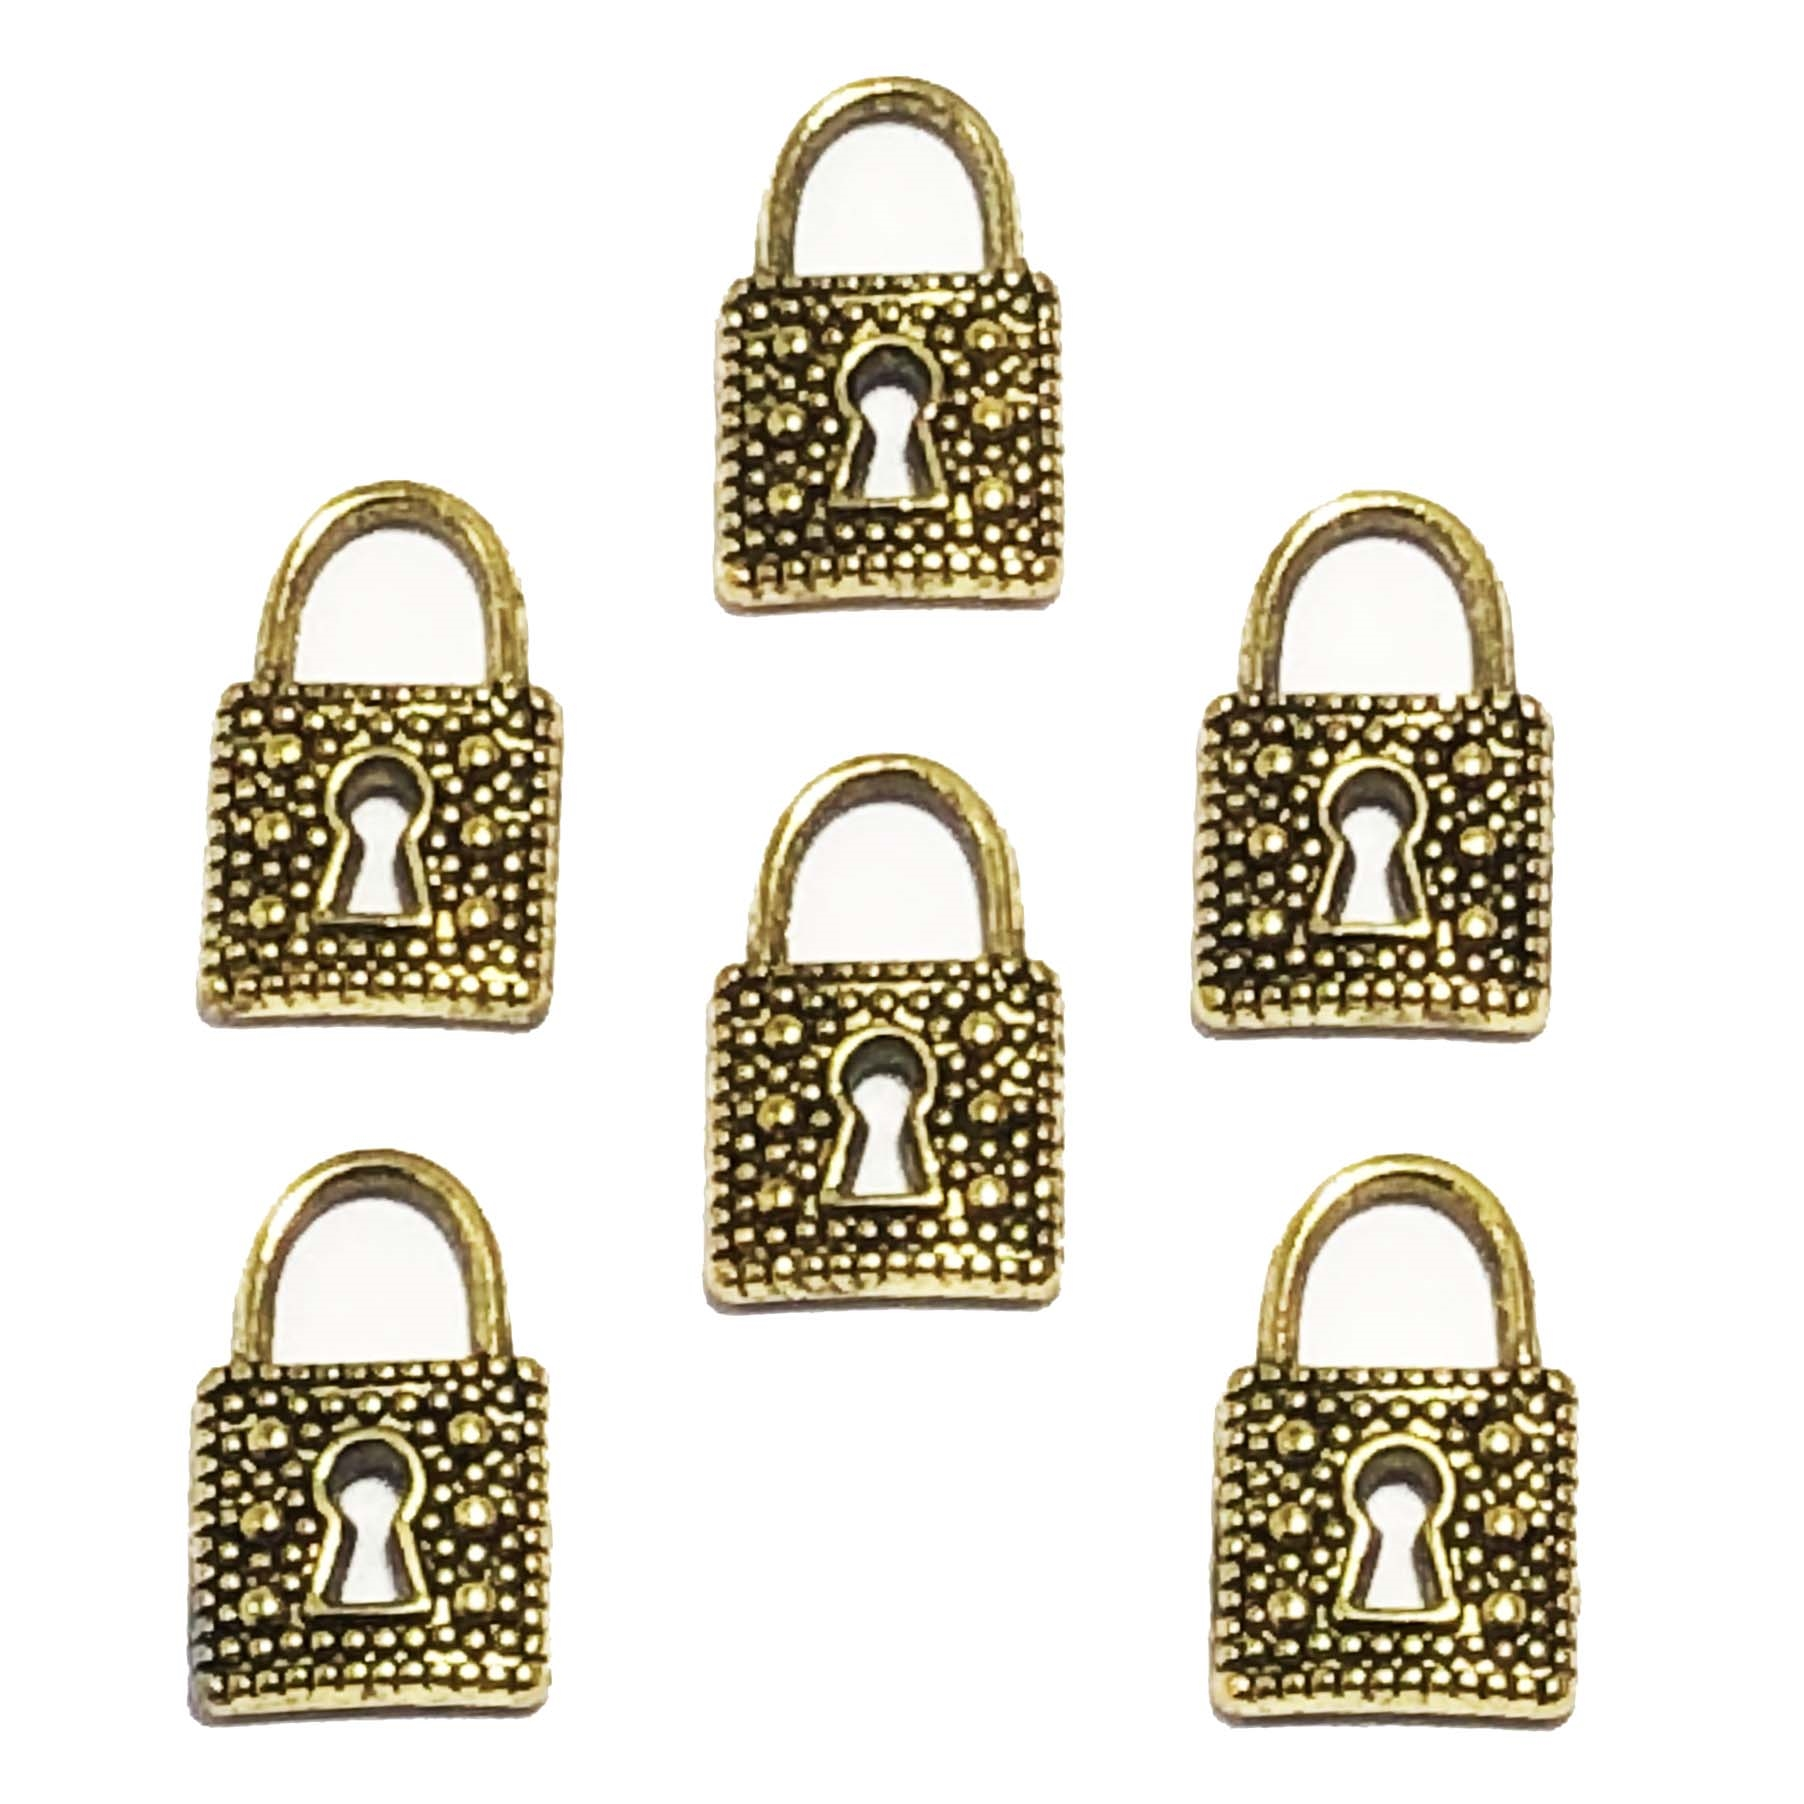 Mini lock charms, antique golden finish, 09540, lock charms, charm, lock, goldtone, set of 6, B'sue Boutiques, jewelry supplies, jewelry making, jewelry parts, findings, lock